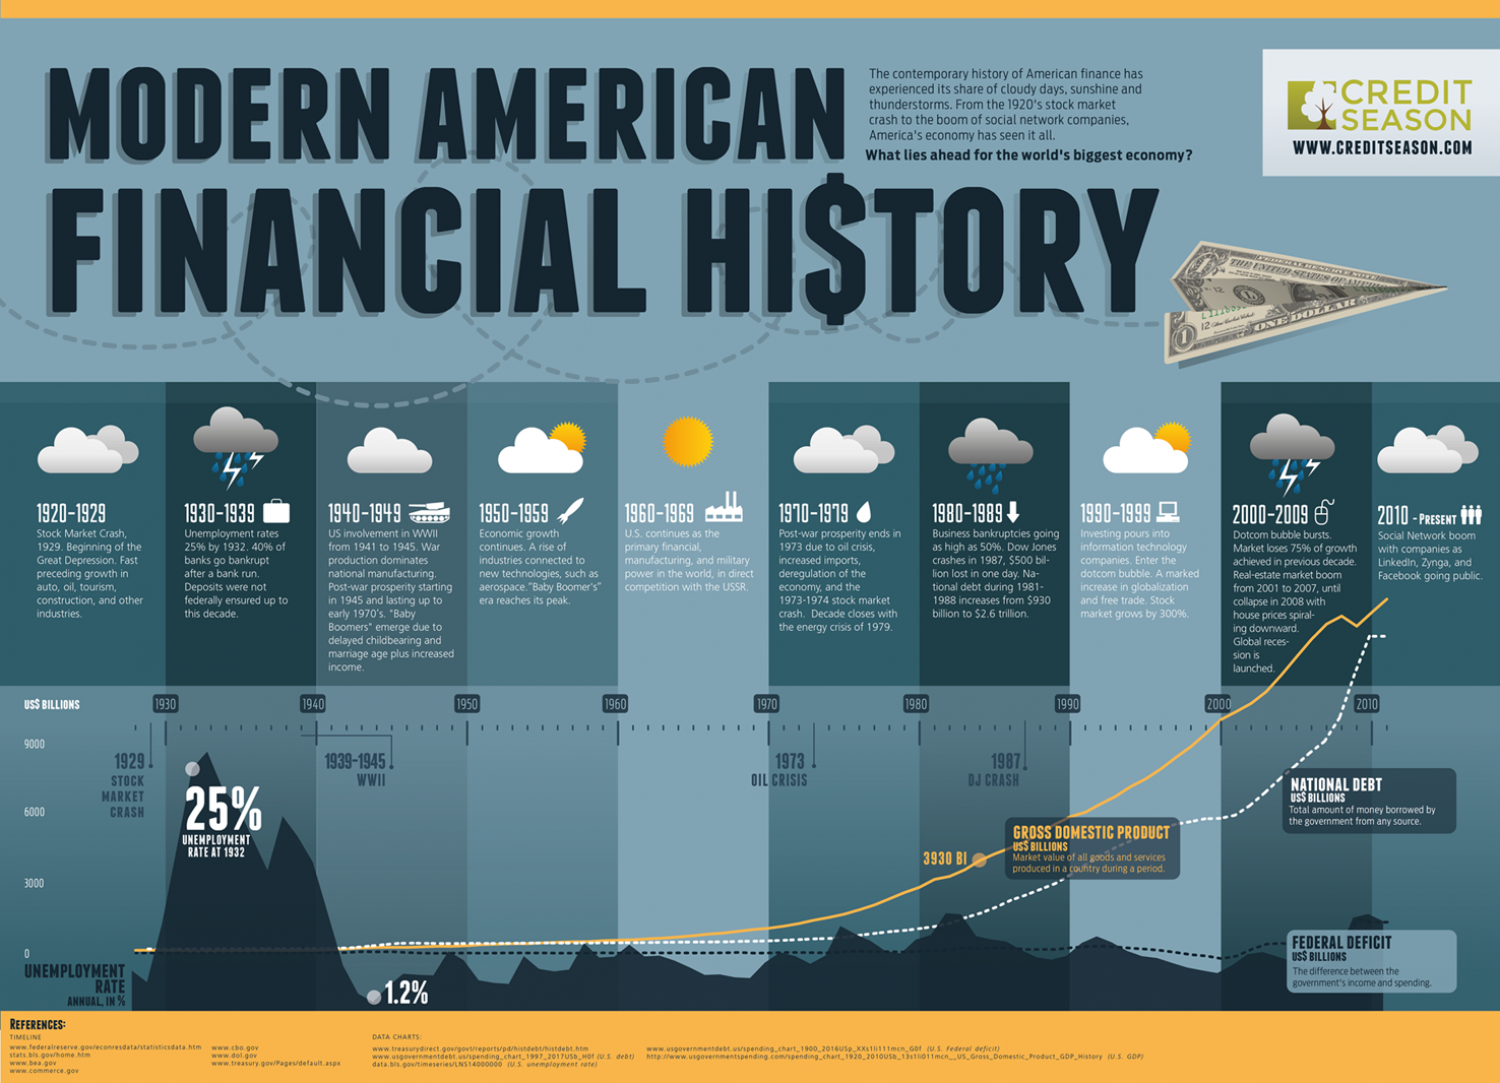 Modern American Financial History Infographic